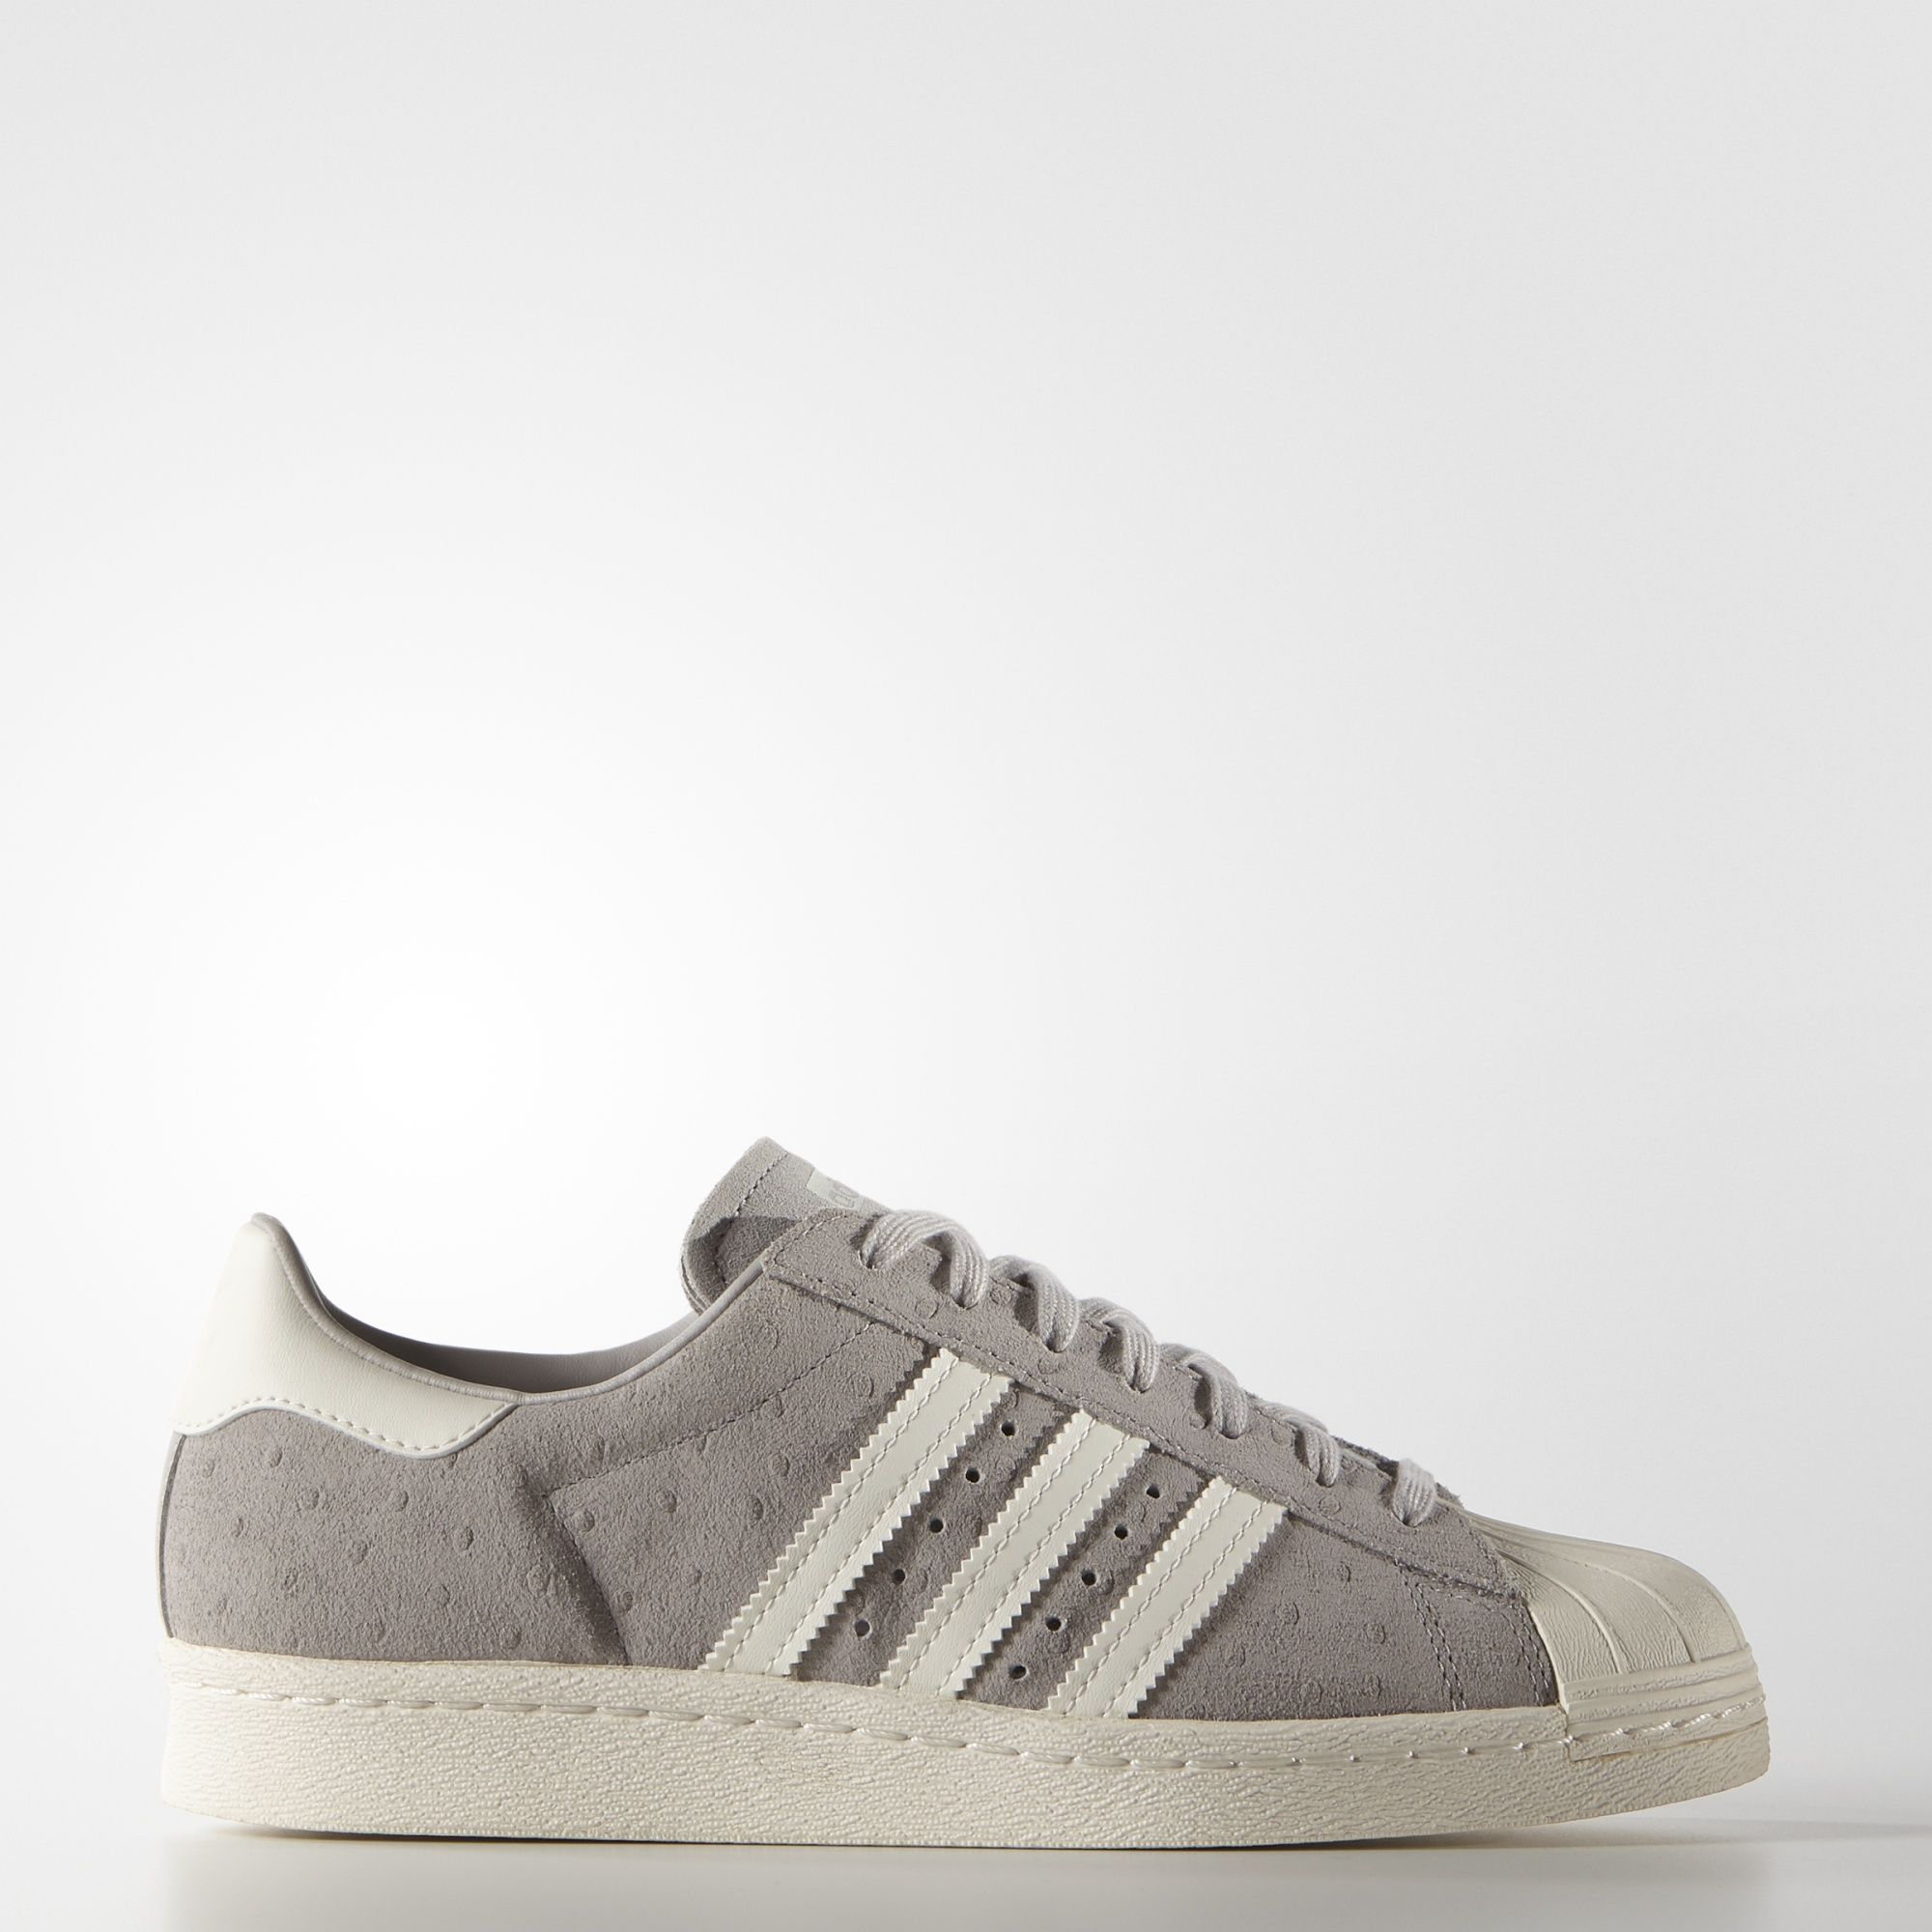 adidas Chaussure Superstar 80s Wishlist Pinterest